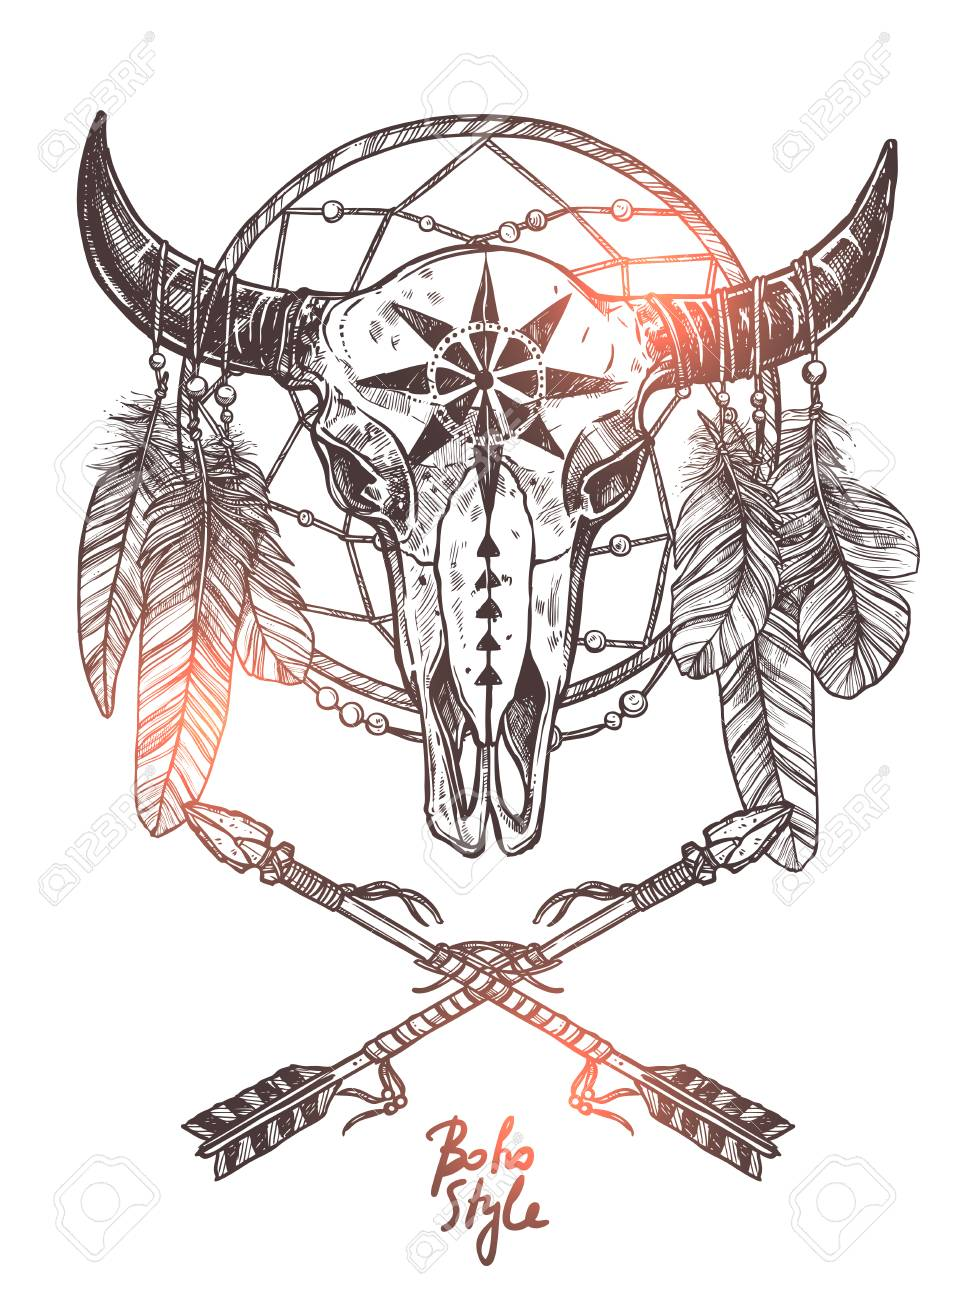 Boho Sketch Illustration With Hand Drawn Bull Skull With Indian Arrows Feathers And Dreamcatcher Monoch Indian Skull Tattoos Bull Skull Tattoos Boho Sketches